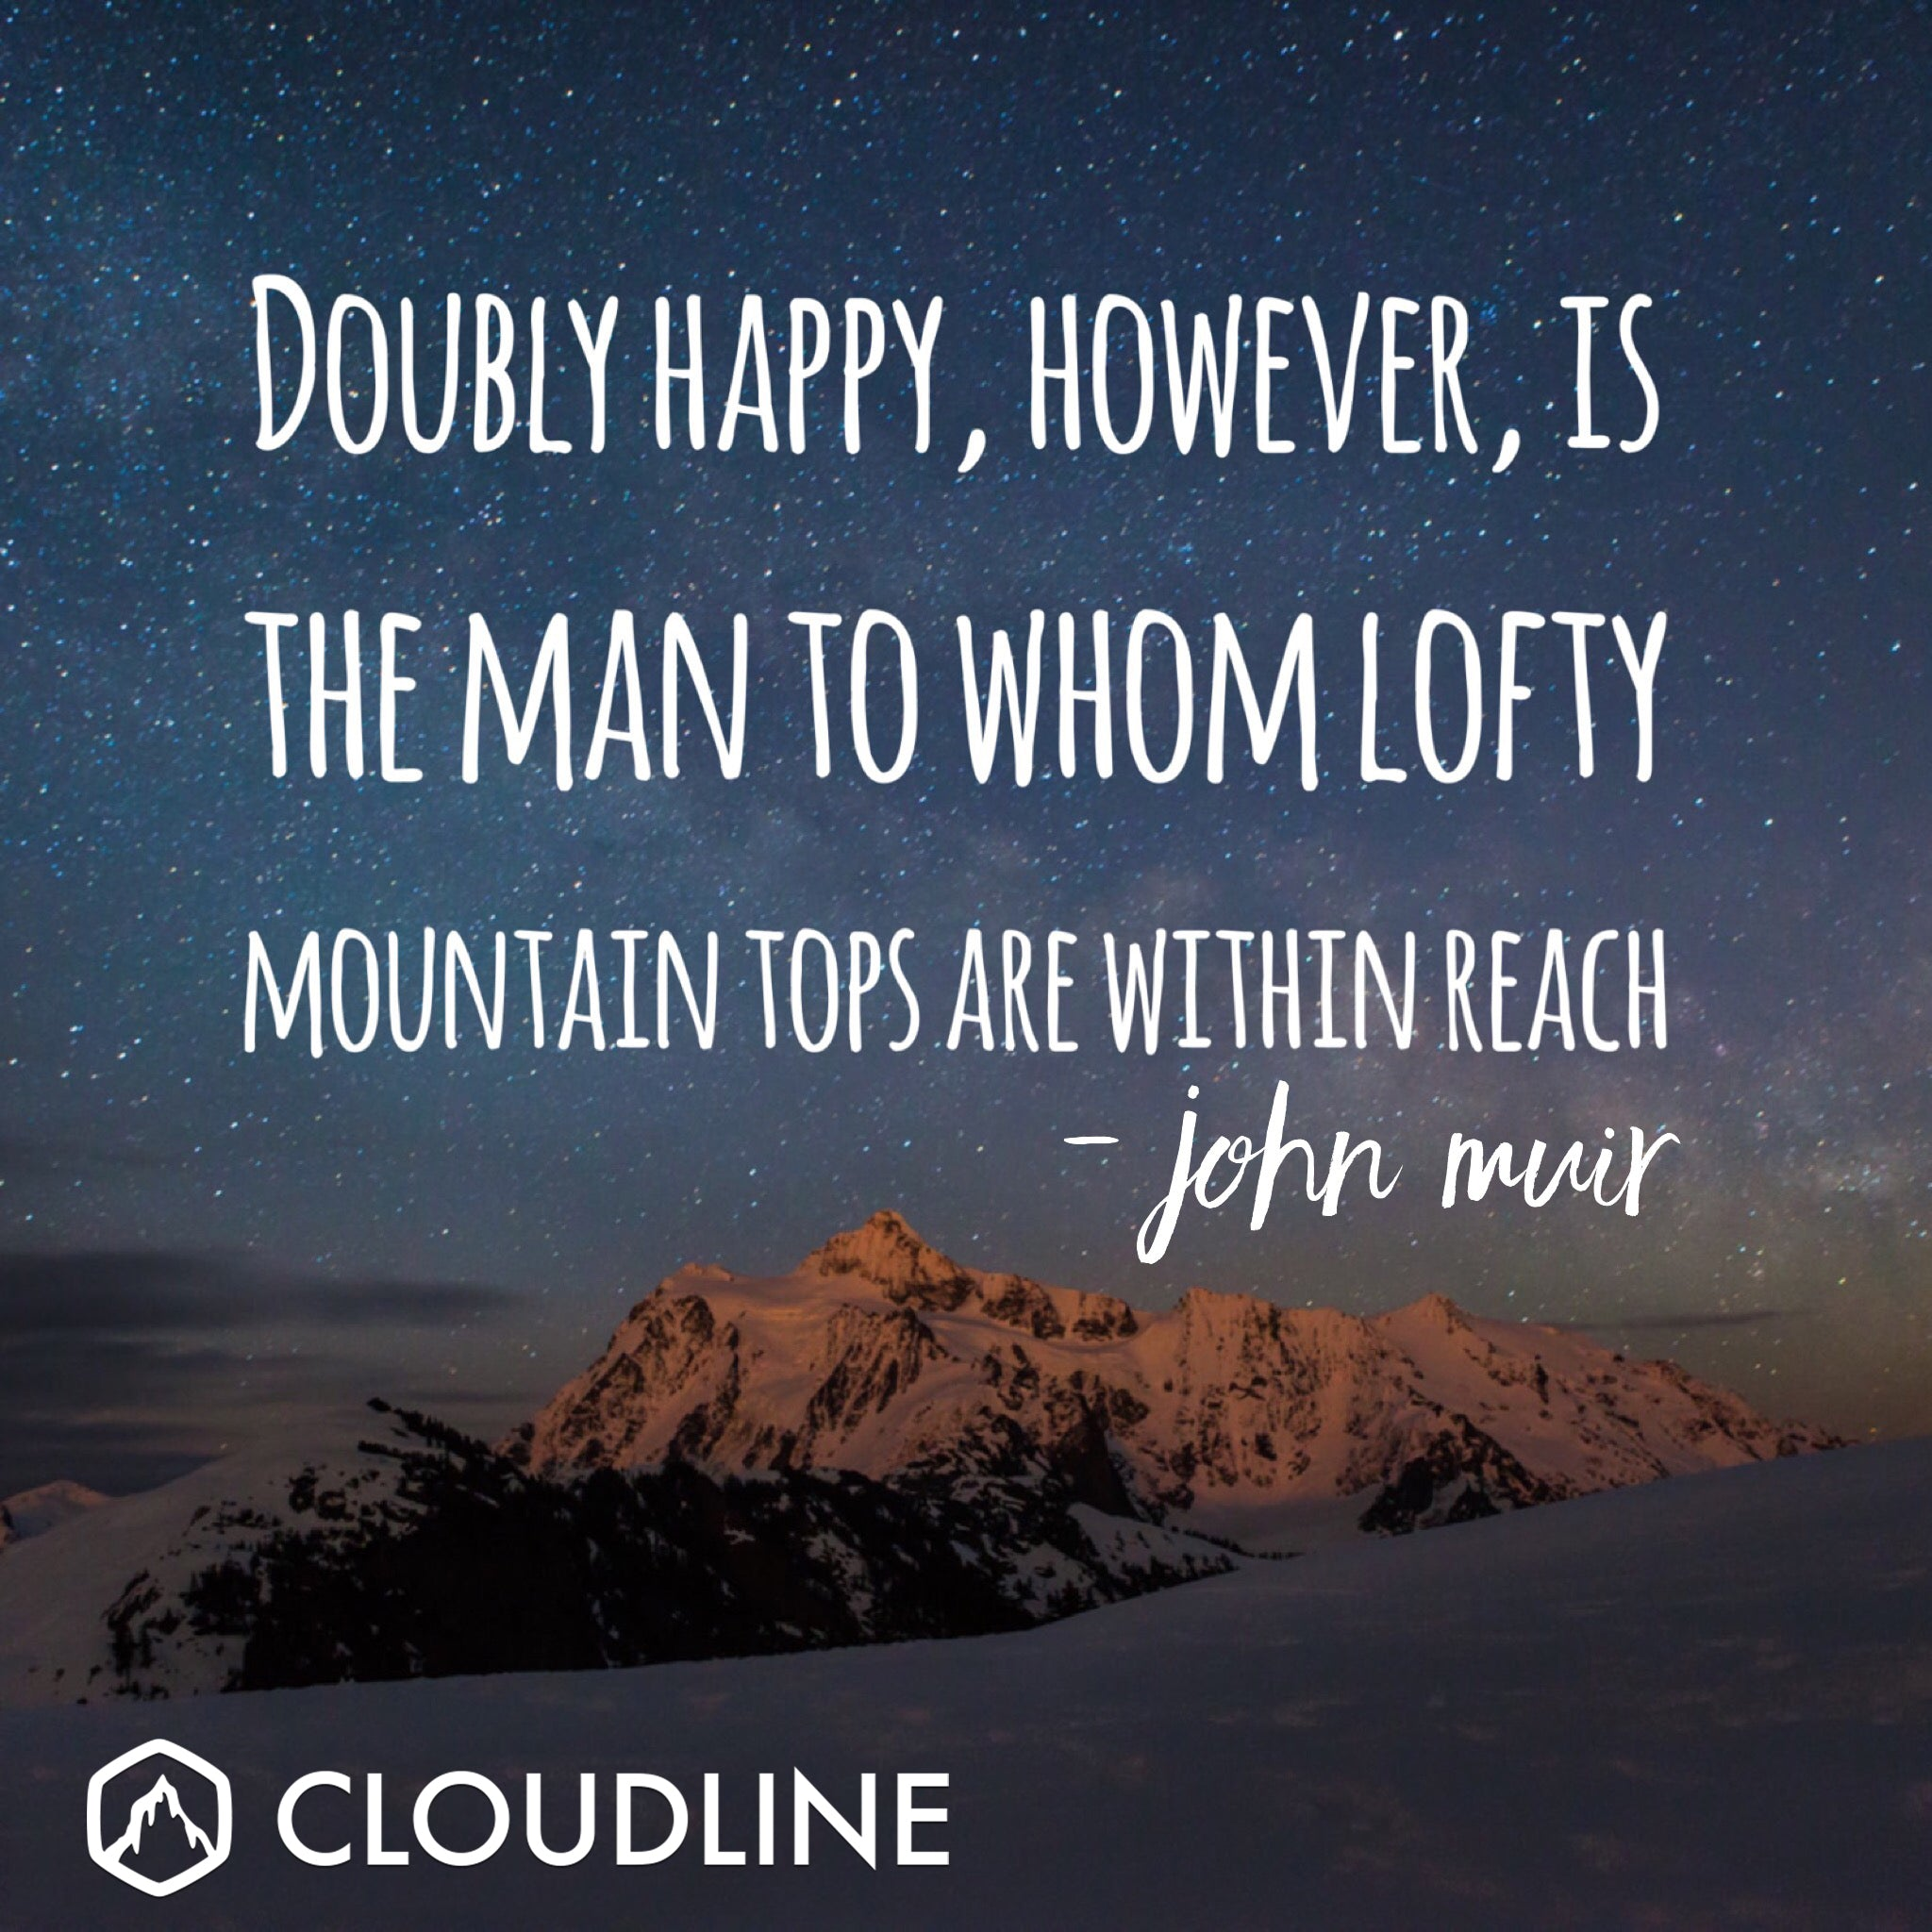 """Doubly happy, however, is the man to whom lofty mountain tops are within reach."" - John Muir"